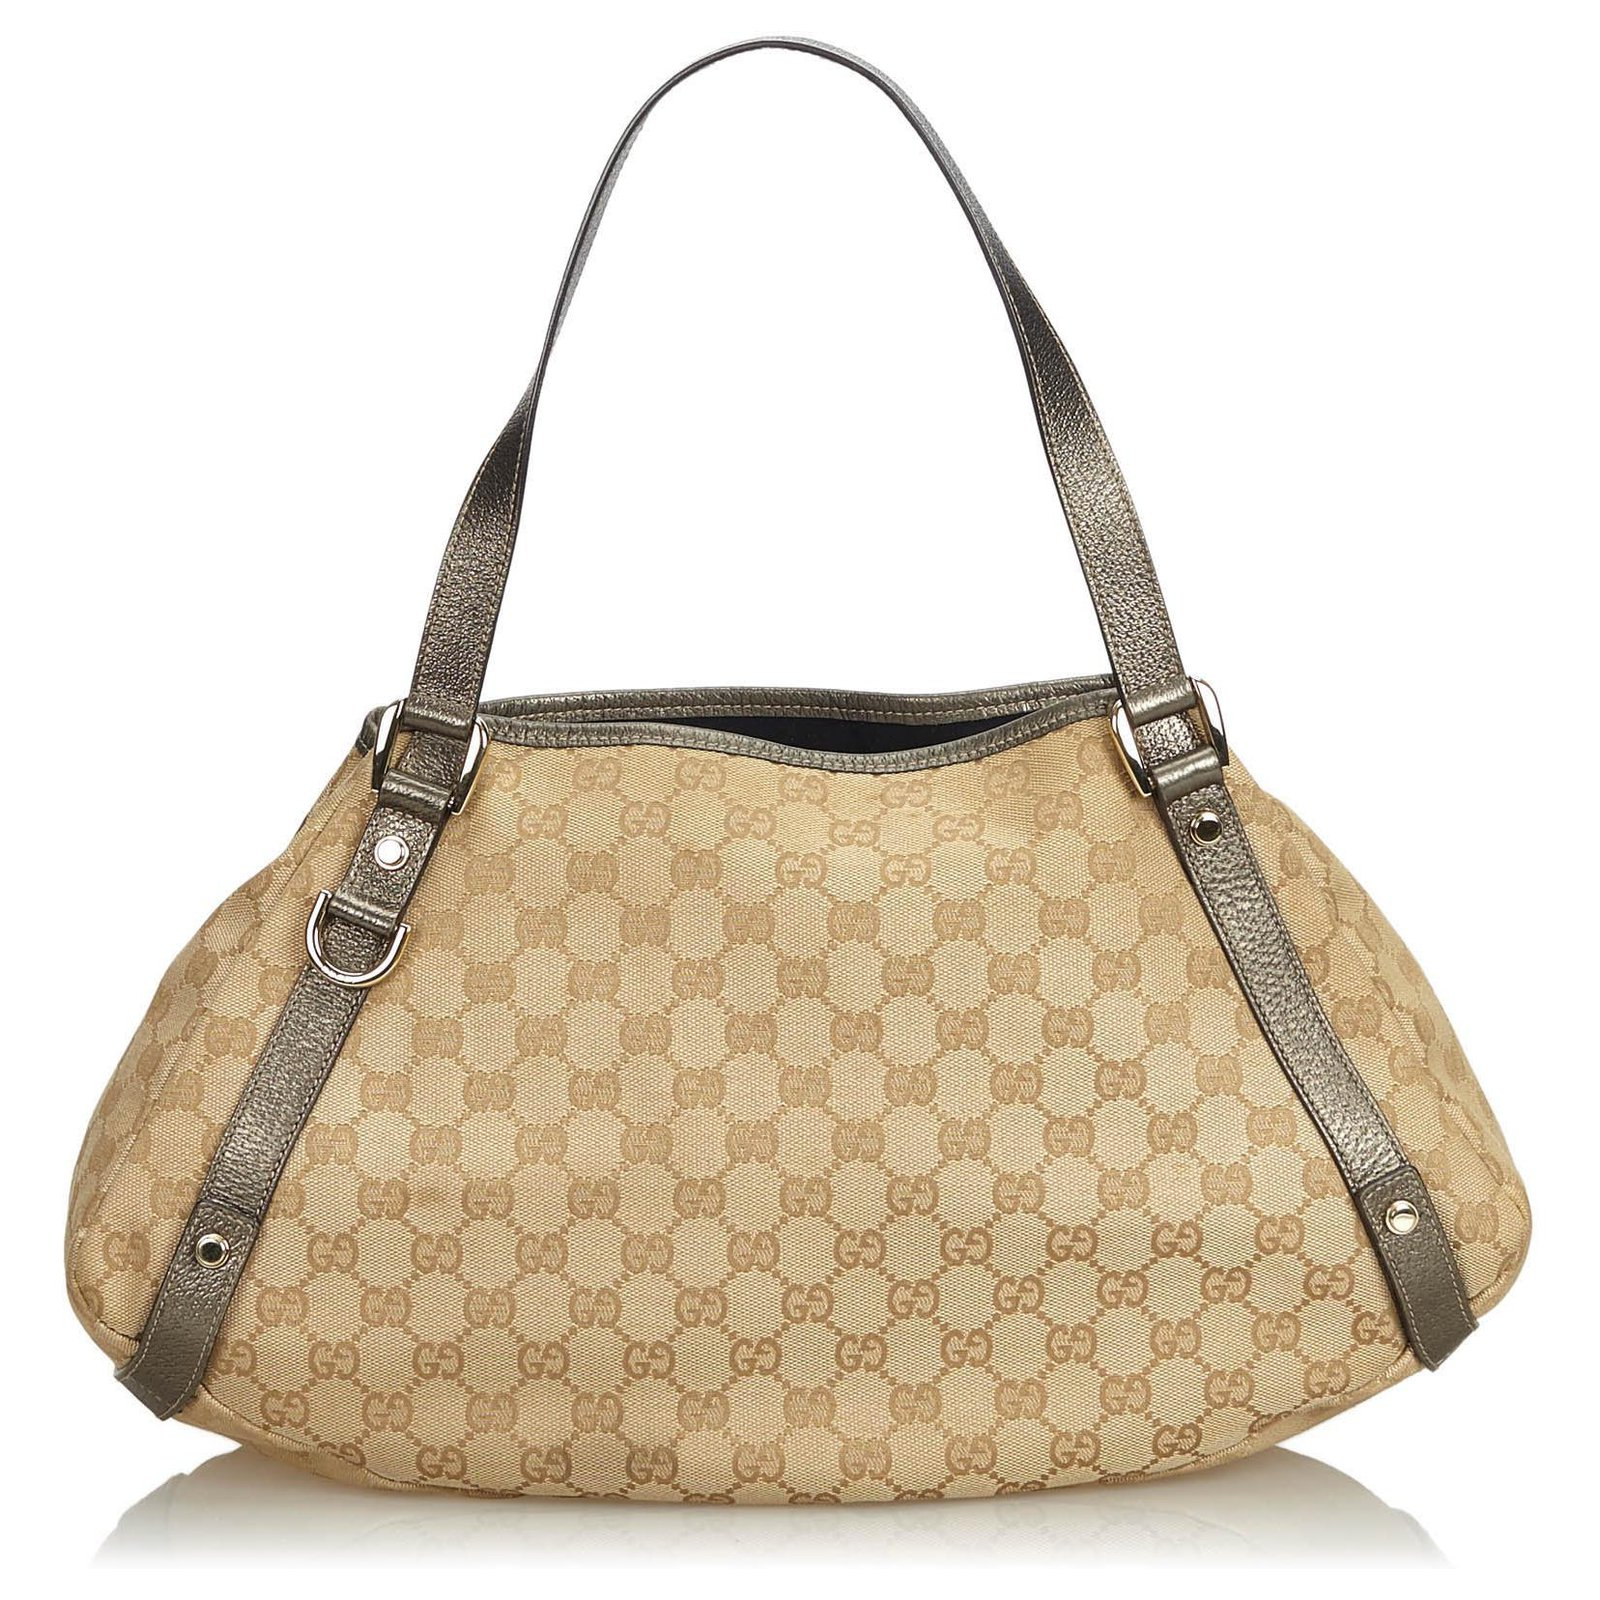 a0d53f1dbed5 Gucci Gucci Brown GG Jacquard Pelham Tote Bag Totes Leather,Other,Cloth  Brown,